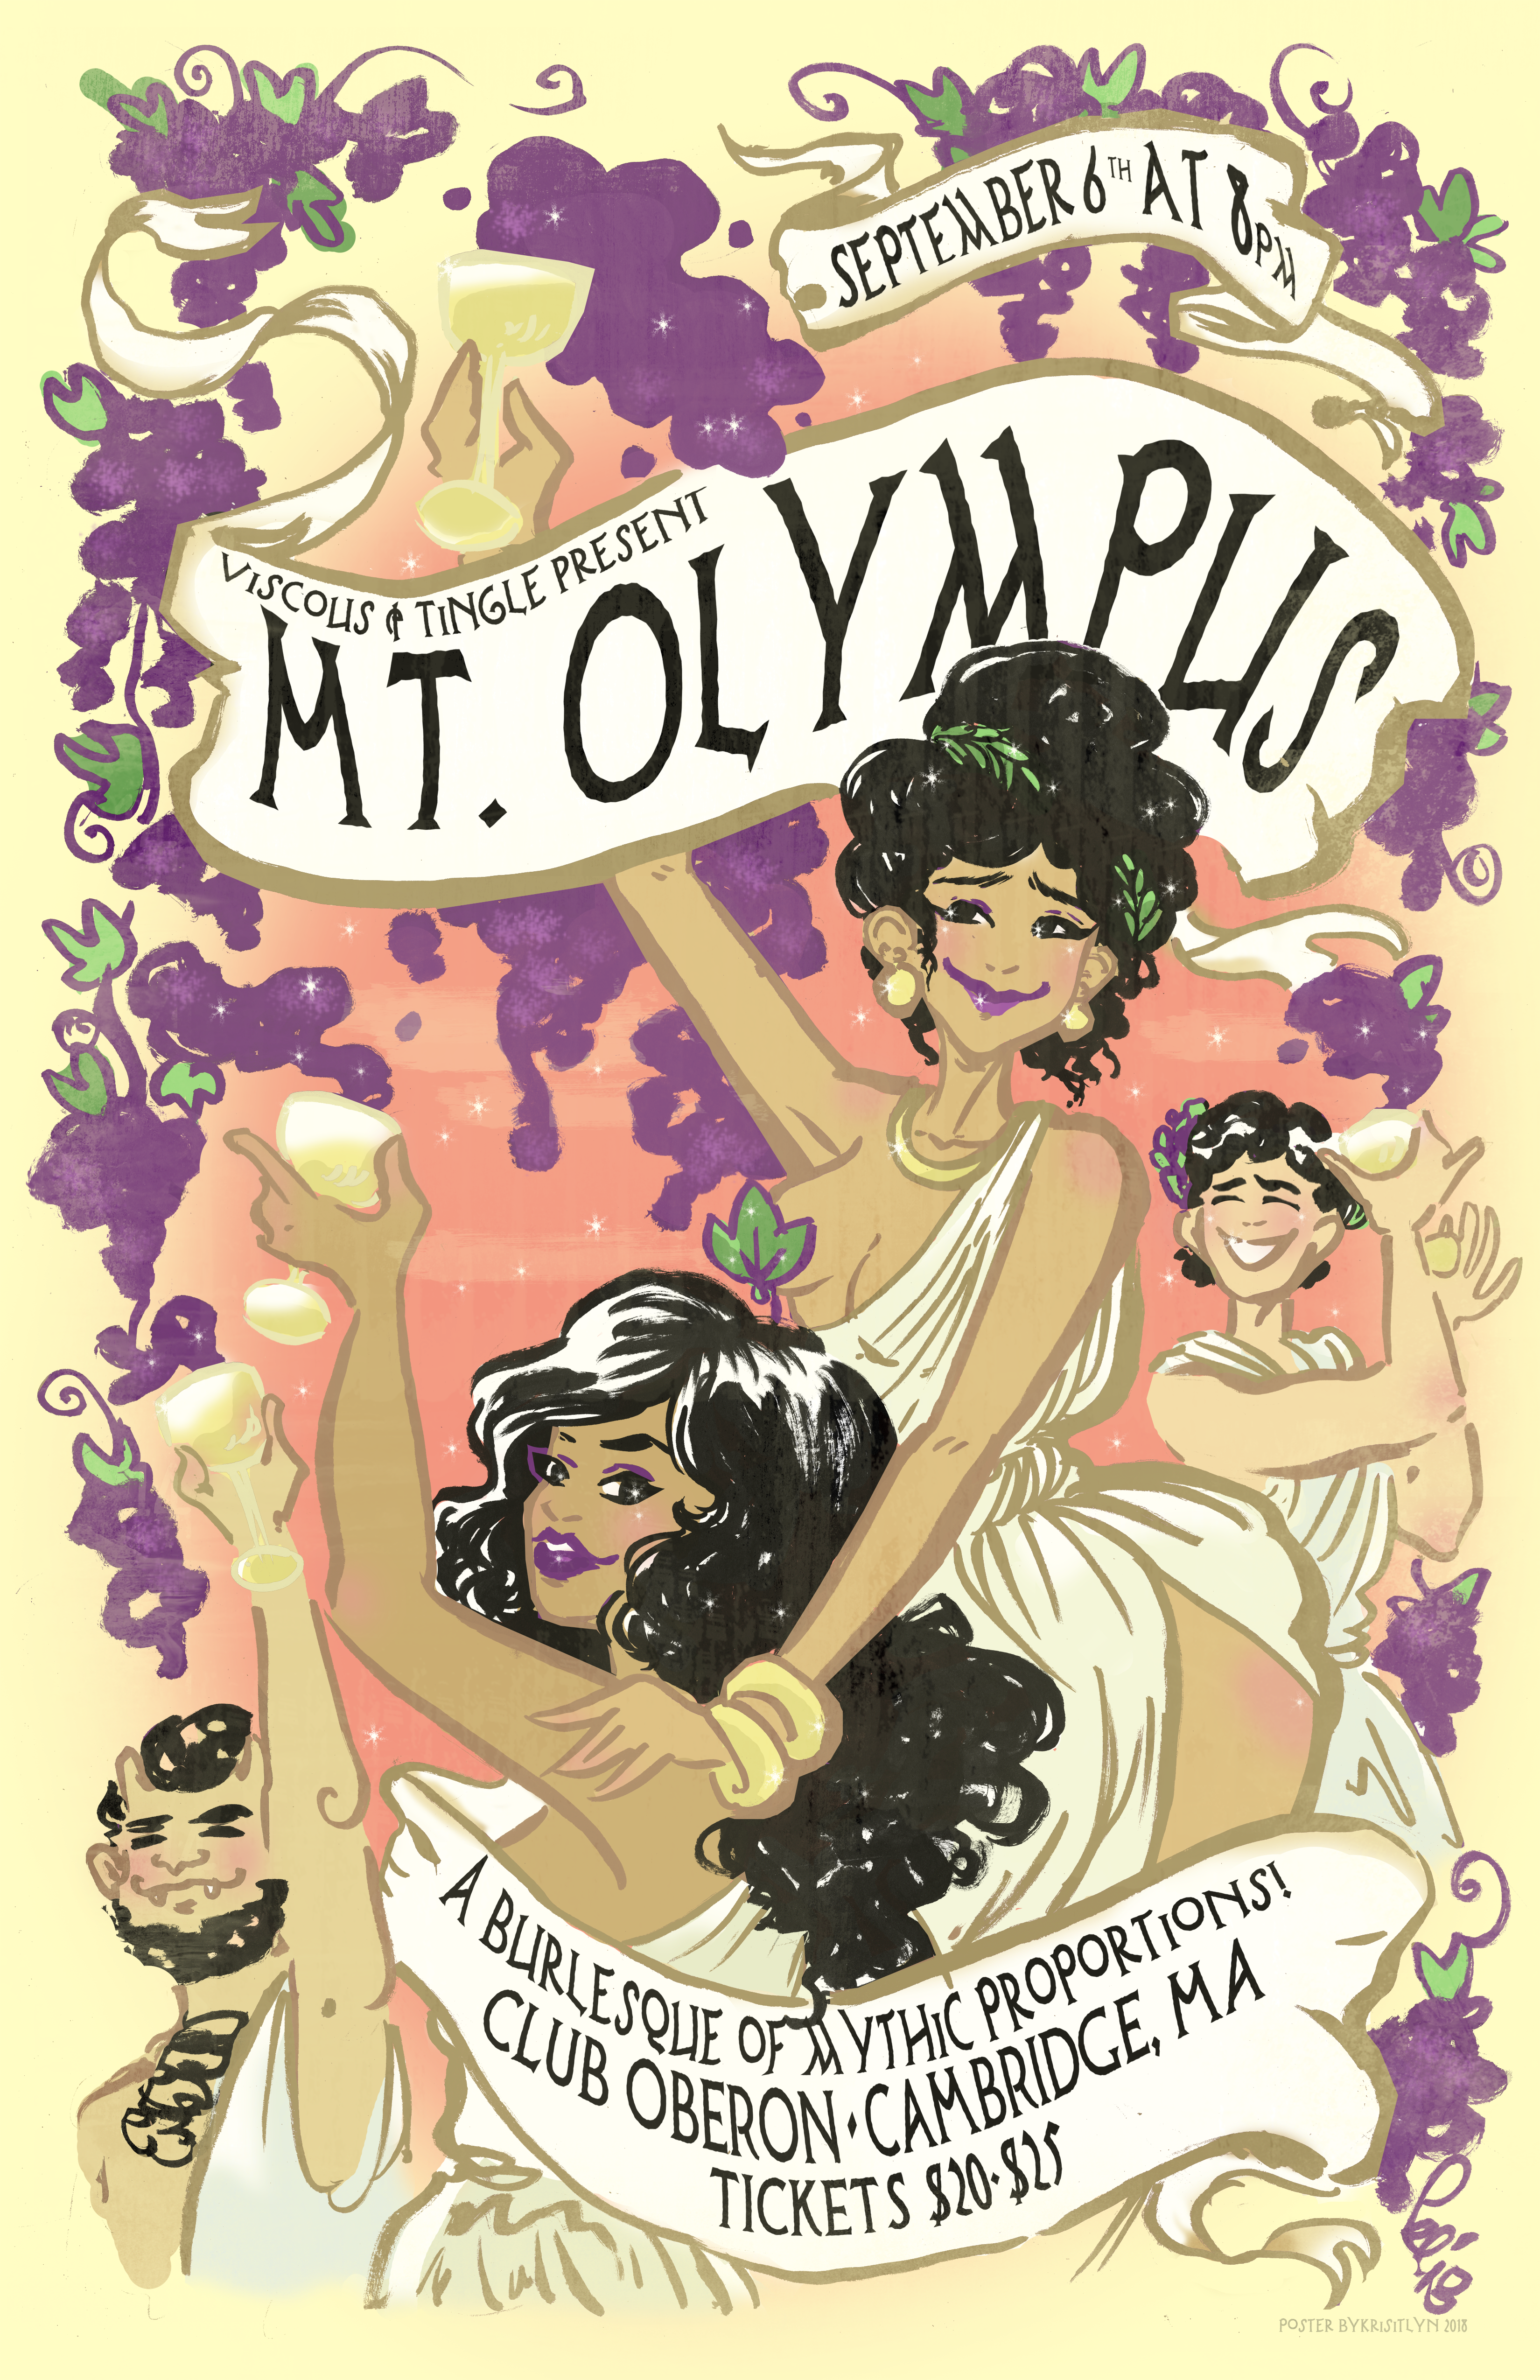 MtOlympus Burlesque